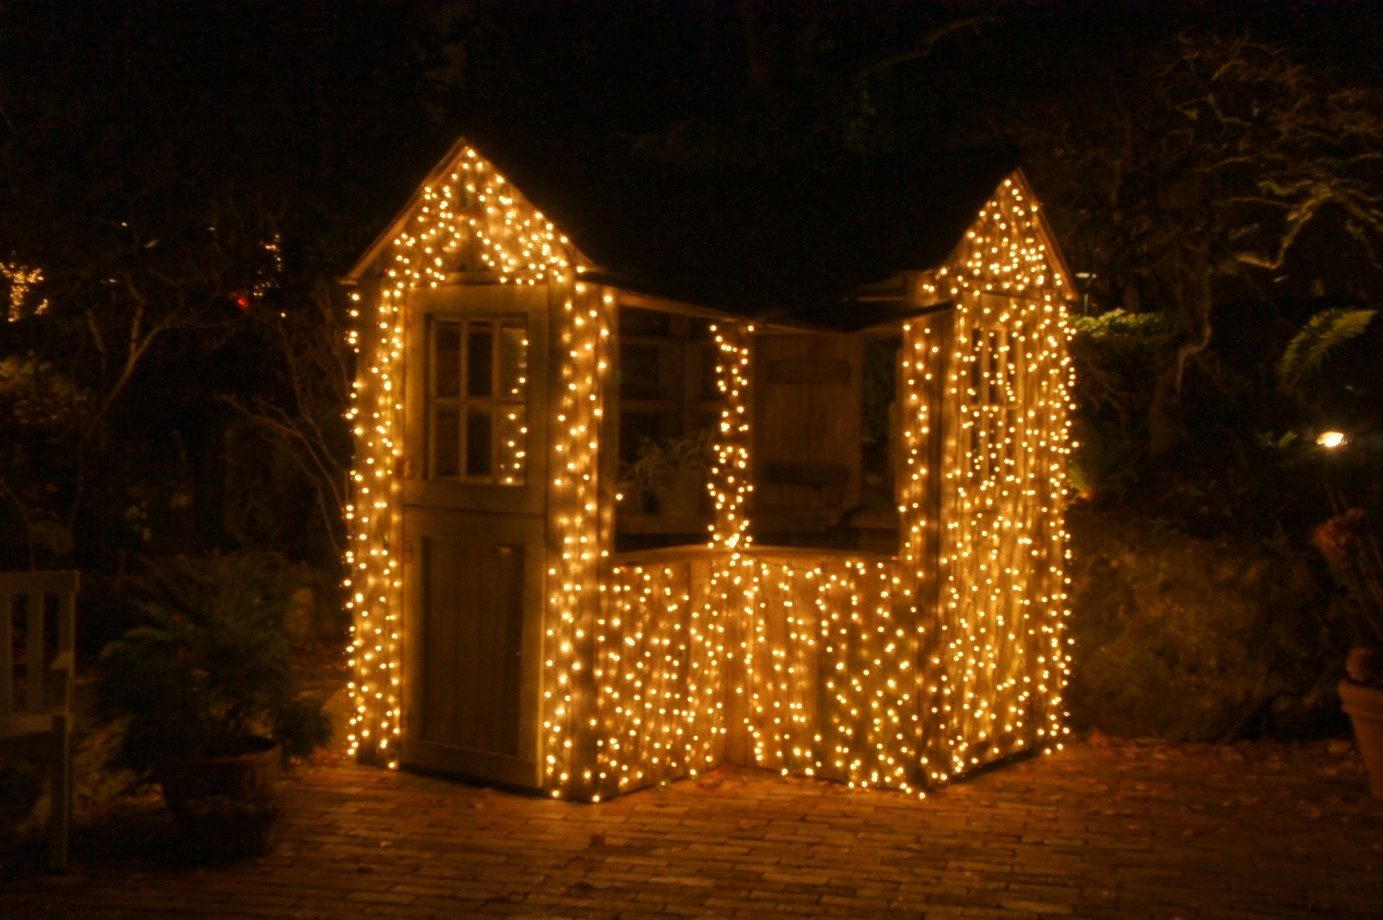 White Christmas lights on a shed